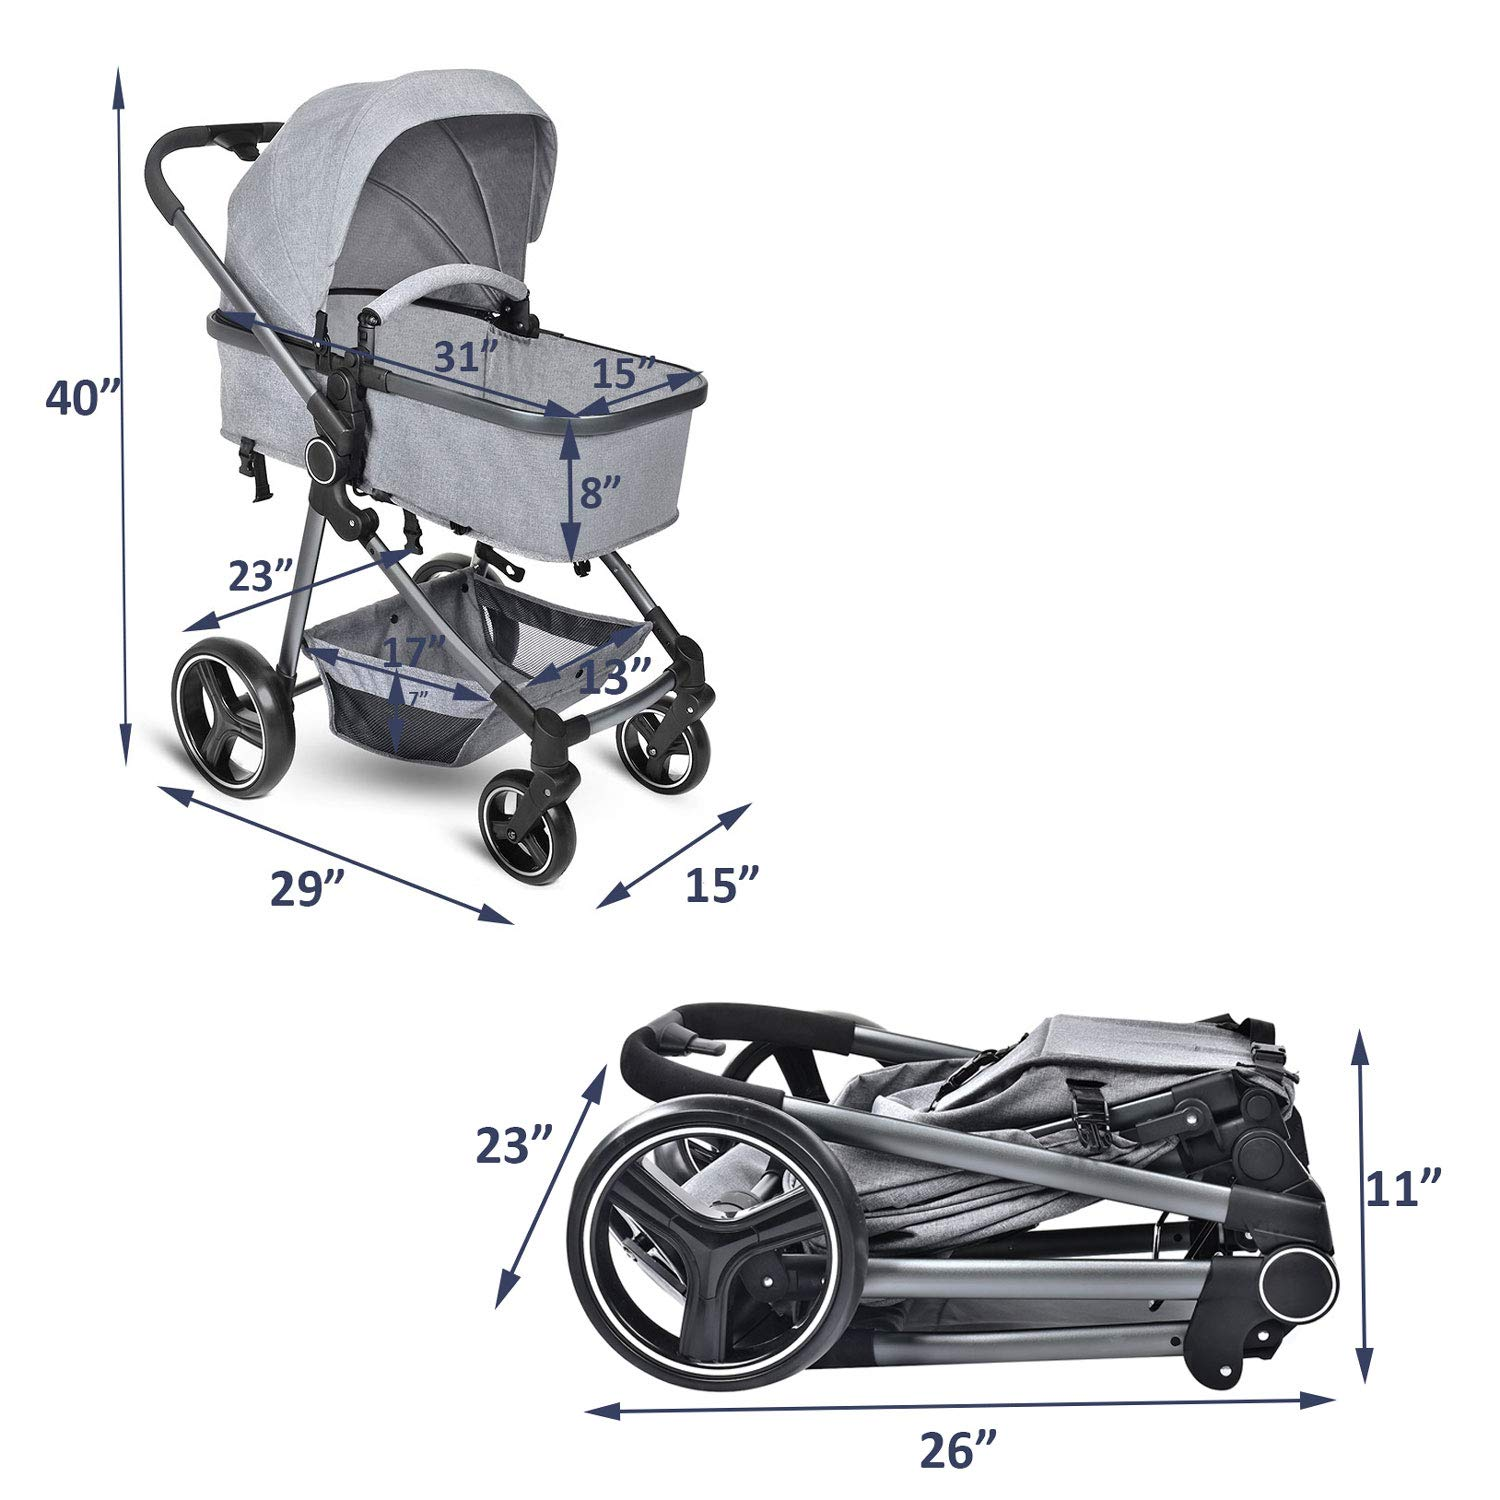 Foldable and Portable Pram Carriage Anti-Shock Pushchair with Aluminum Frame Gray 5-Point Harness and High Capacity Basket Convertible Bassinet Reclining Stroller Cozylifeunion Baby Stroller